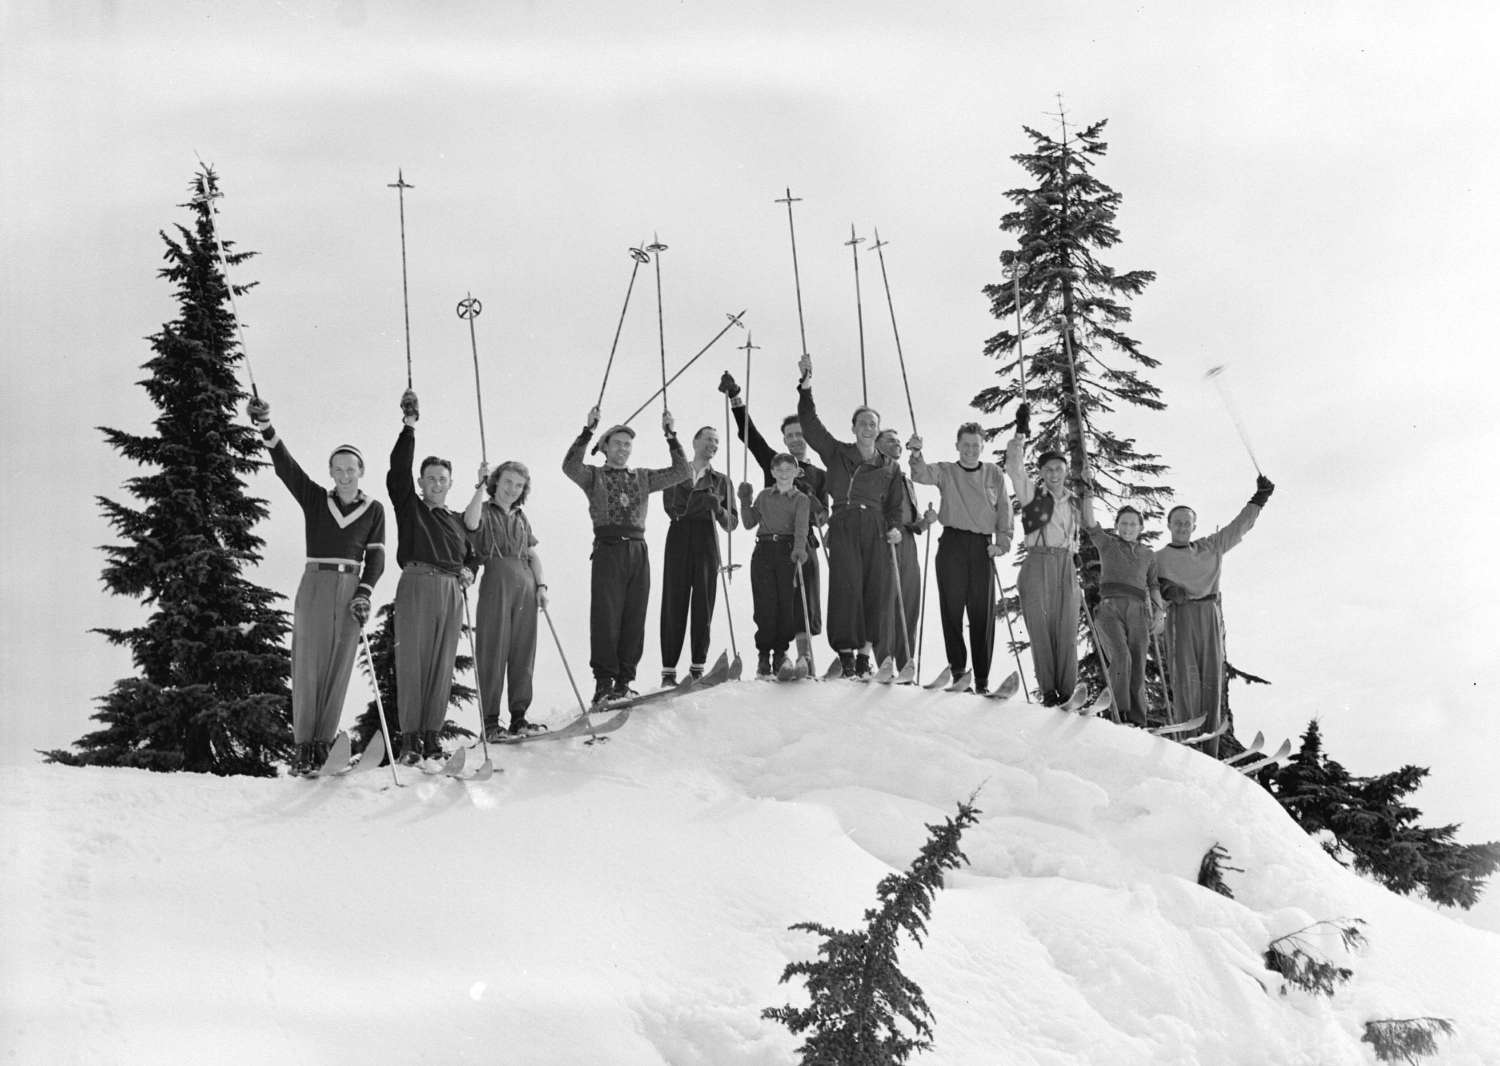 Skiers with poles in the air